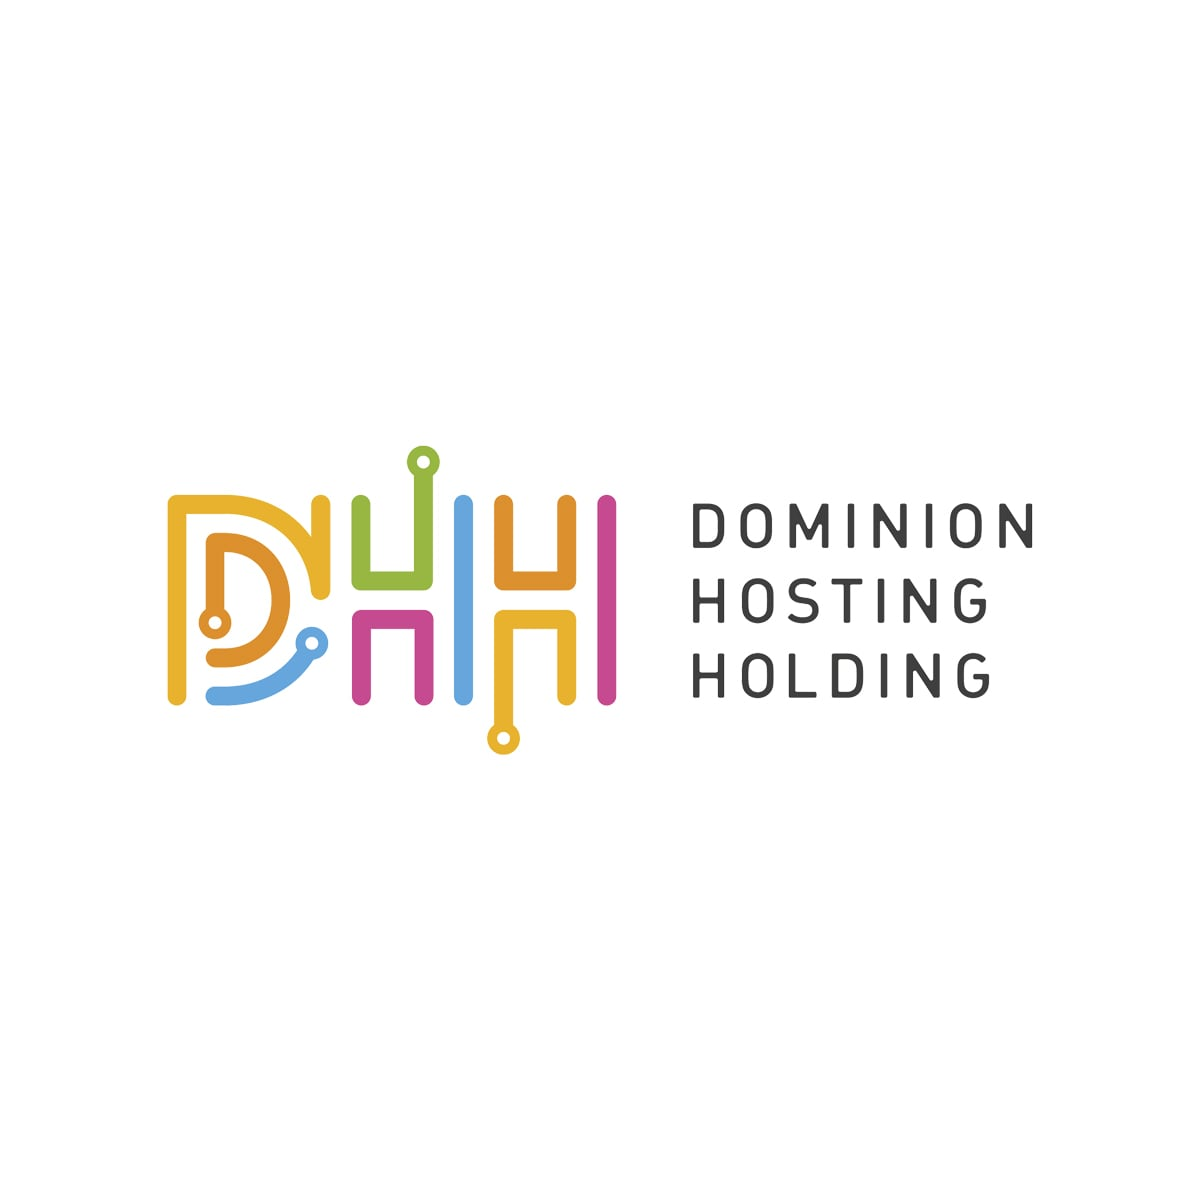 dhh-dominion-hosting-holding